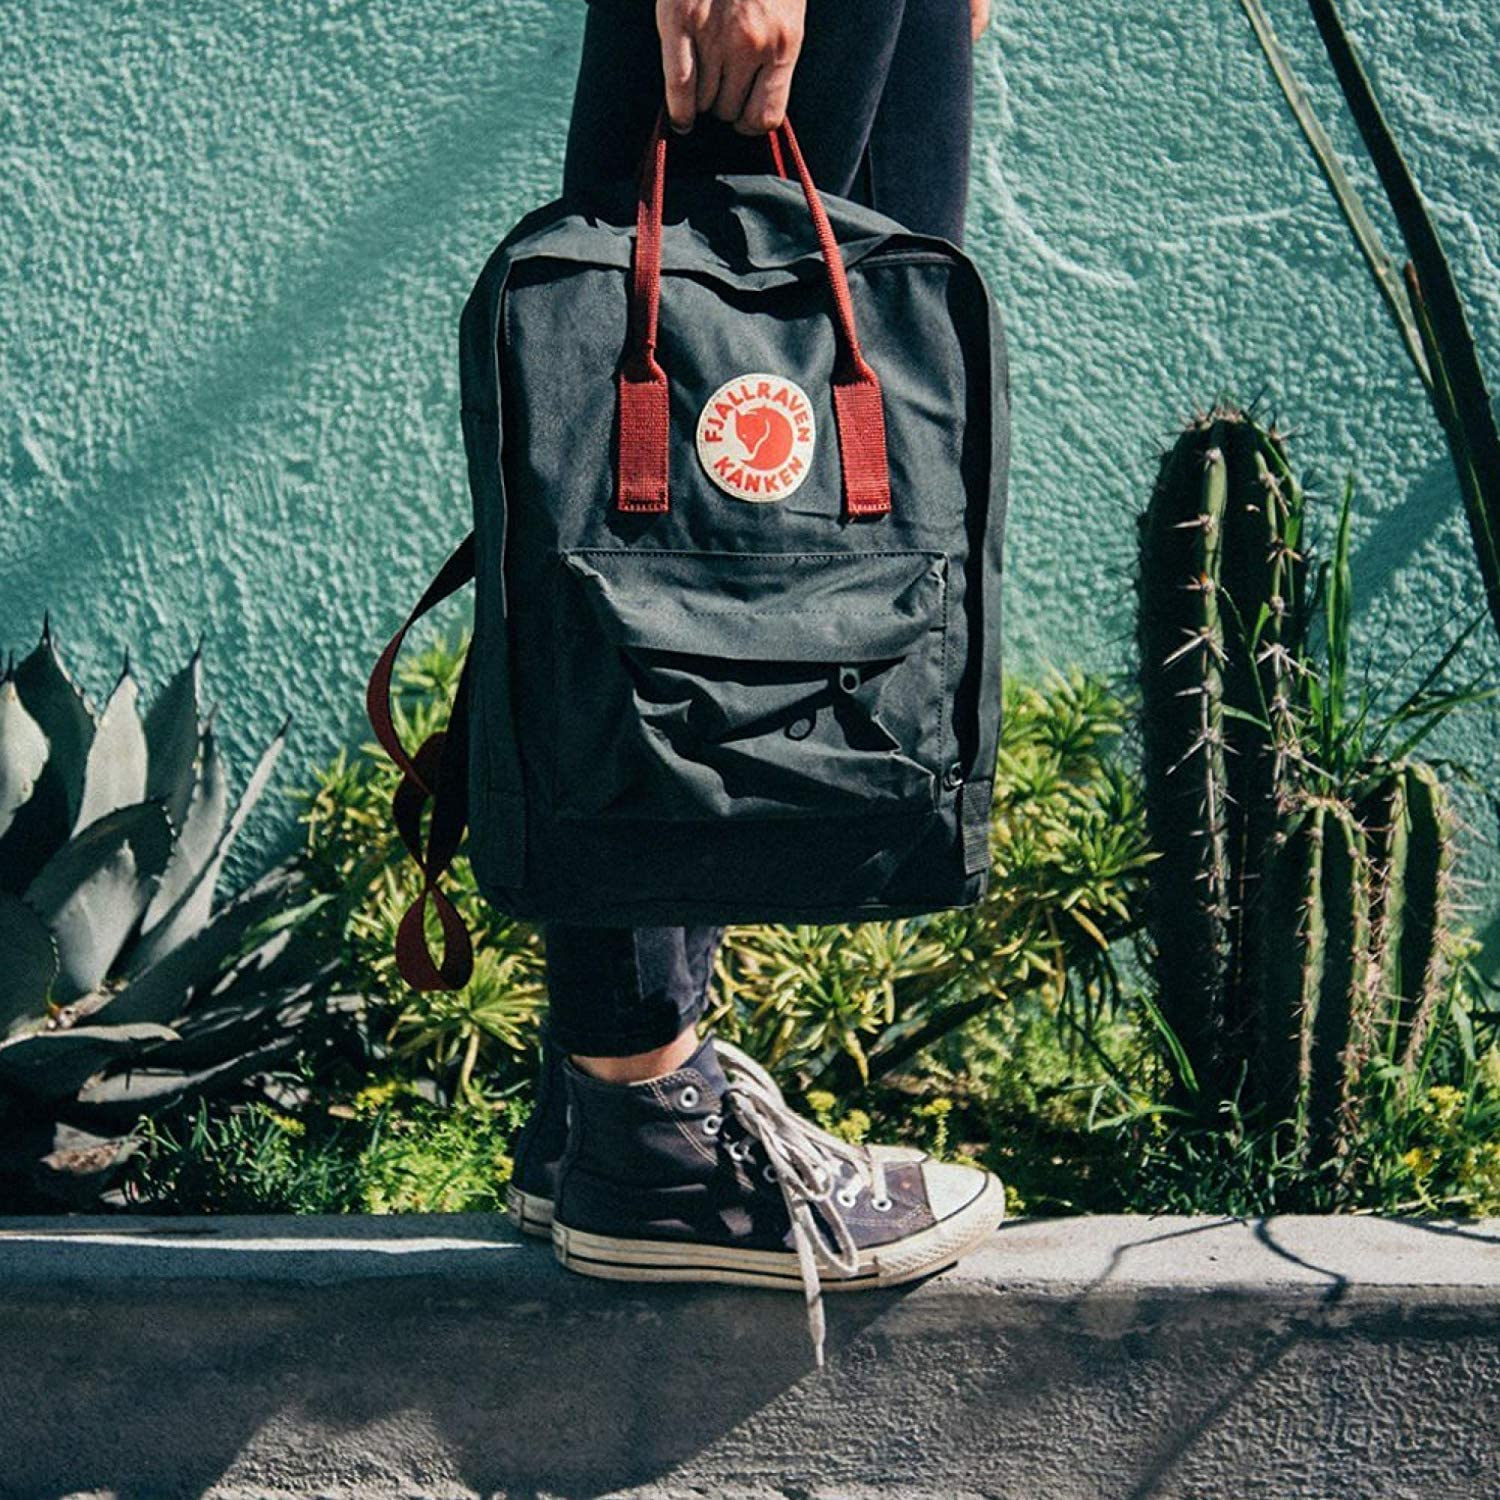 No Navy 2 Backpack for Everyday